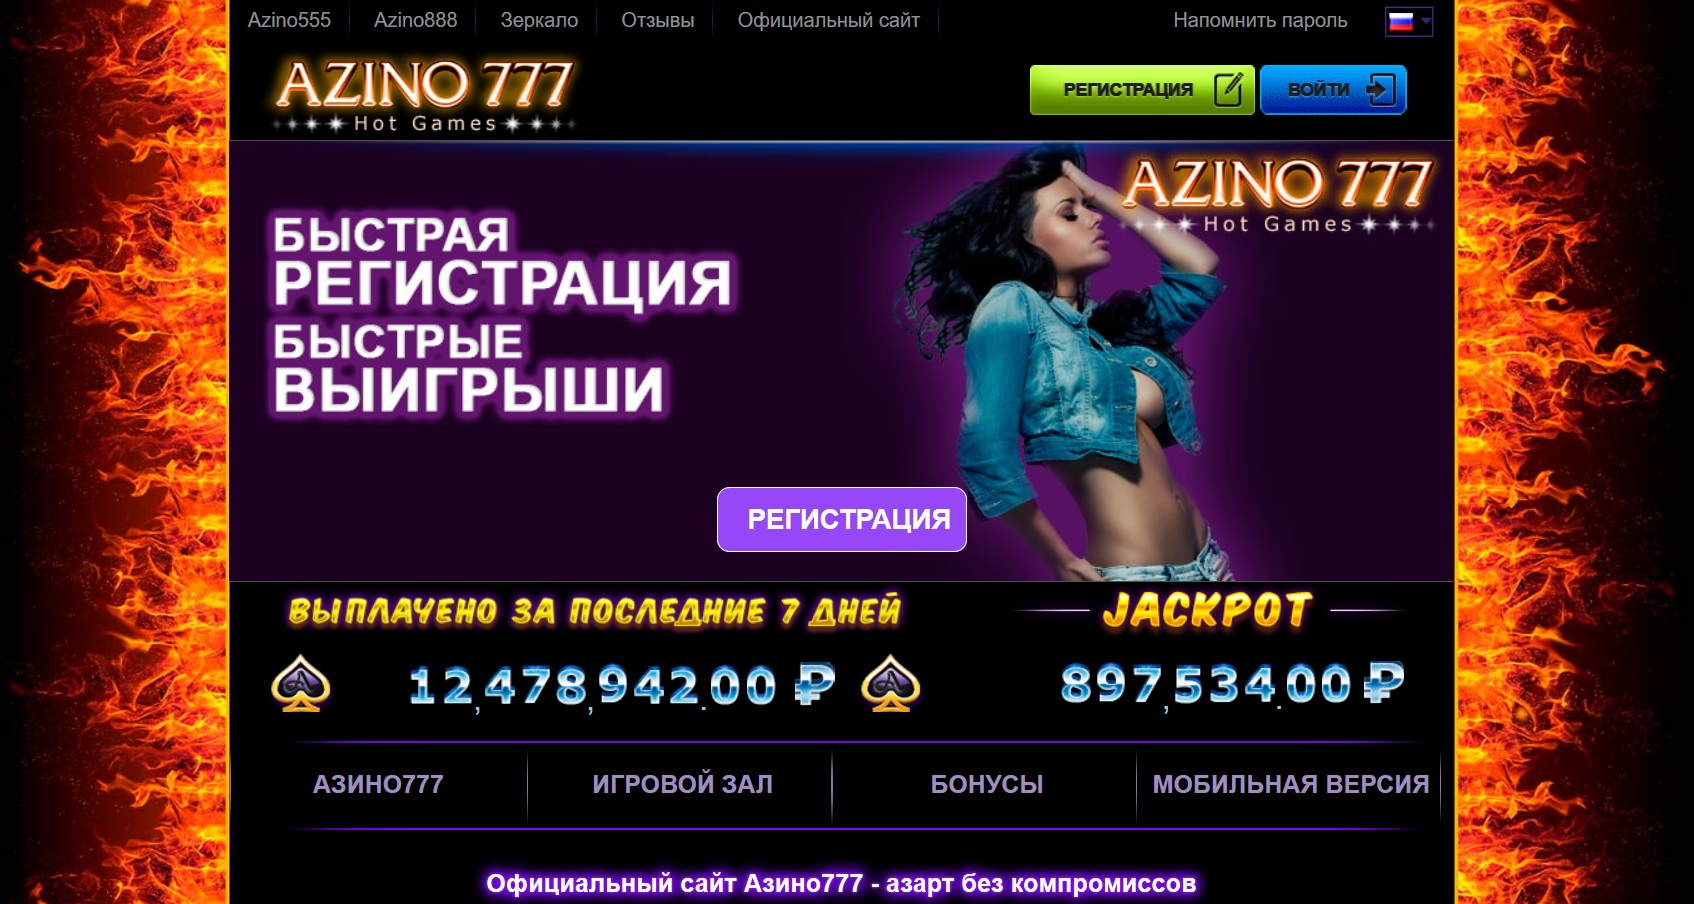 azino 777 casino ru официальный сайт